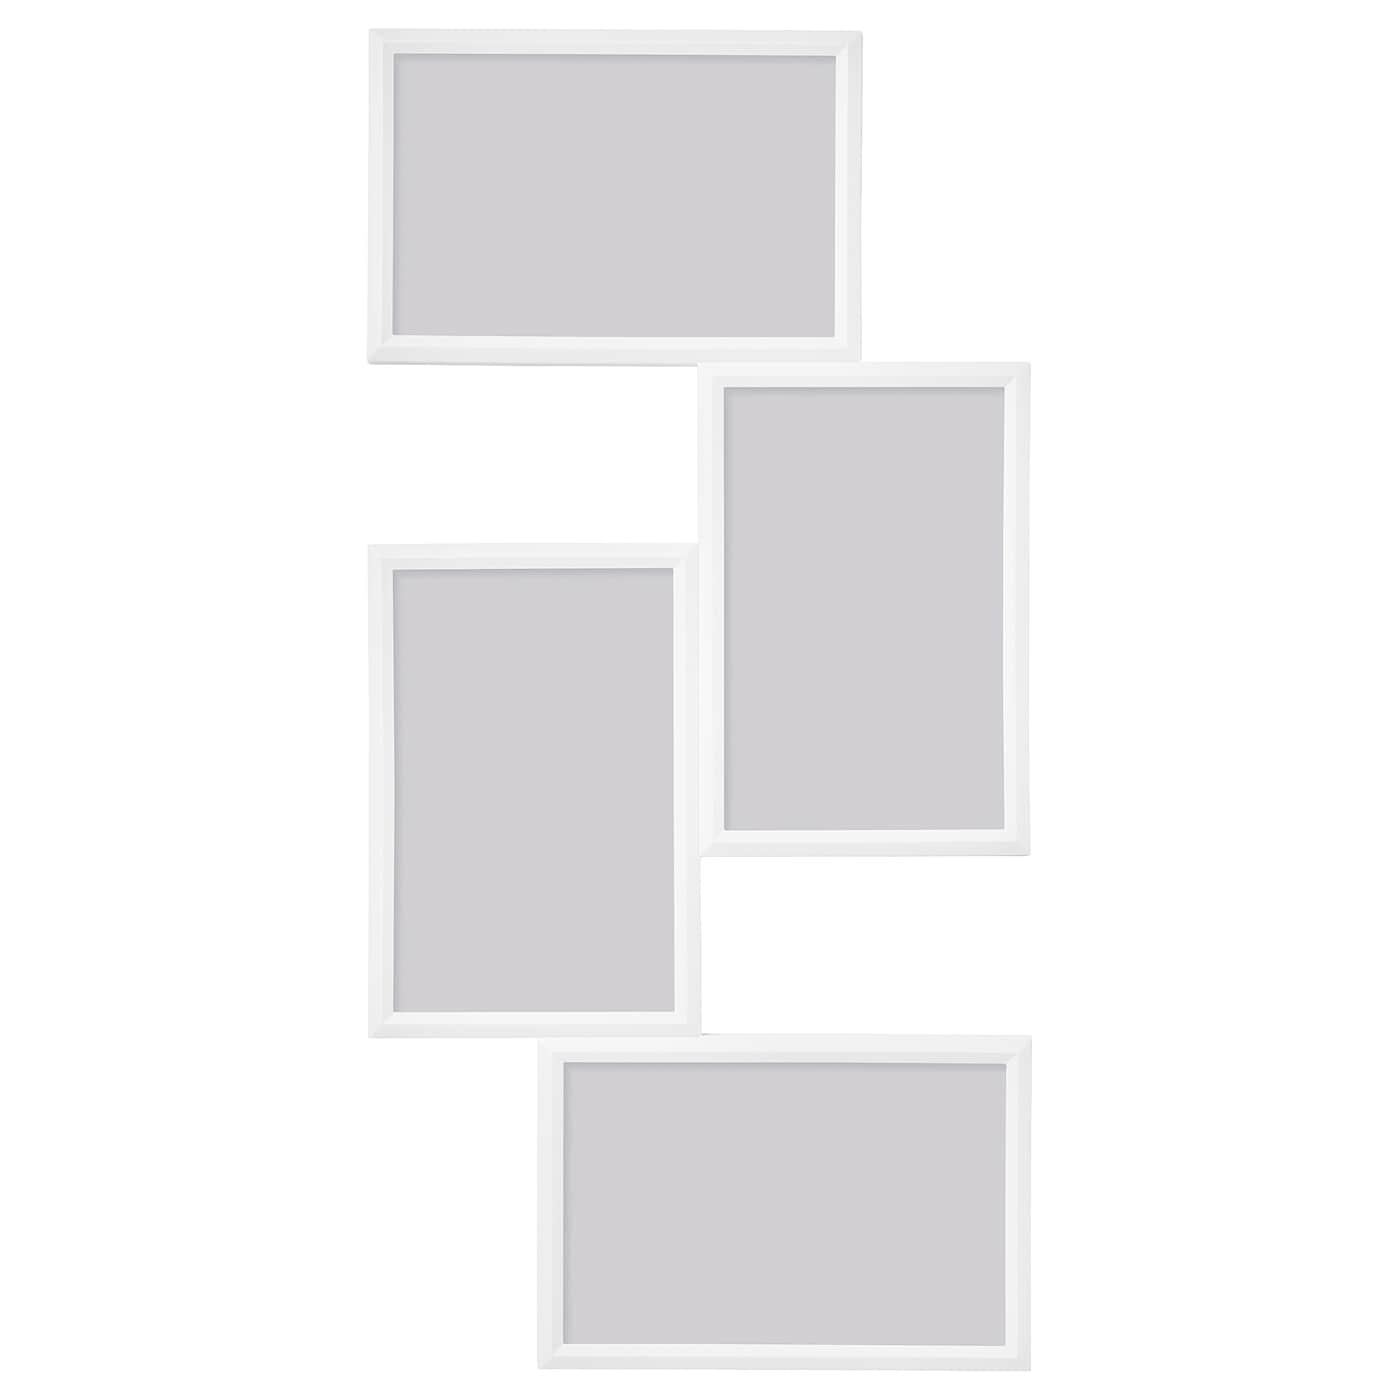 Frame Company Pack of 10 Mounts *Choice of Colours*